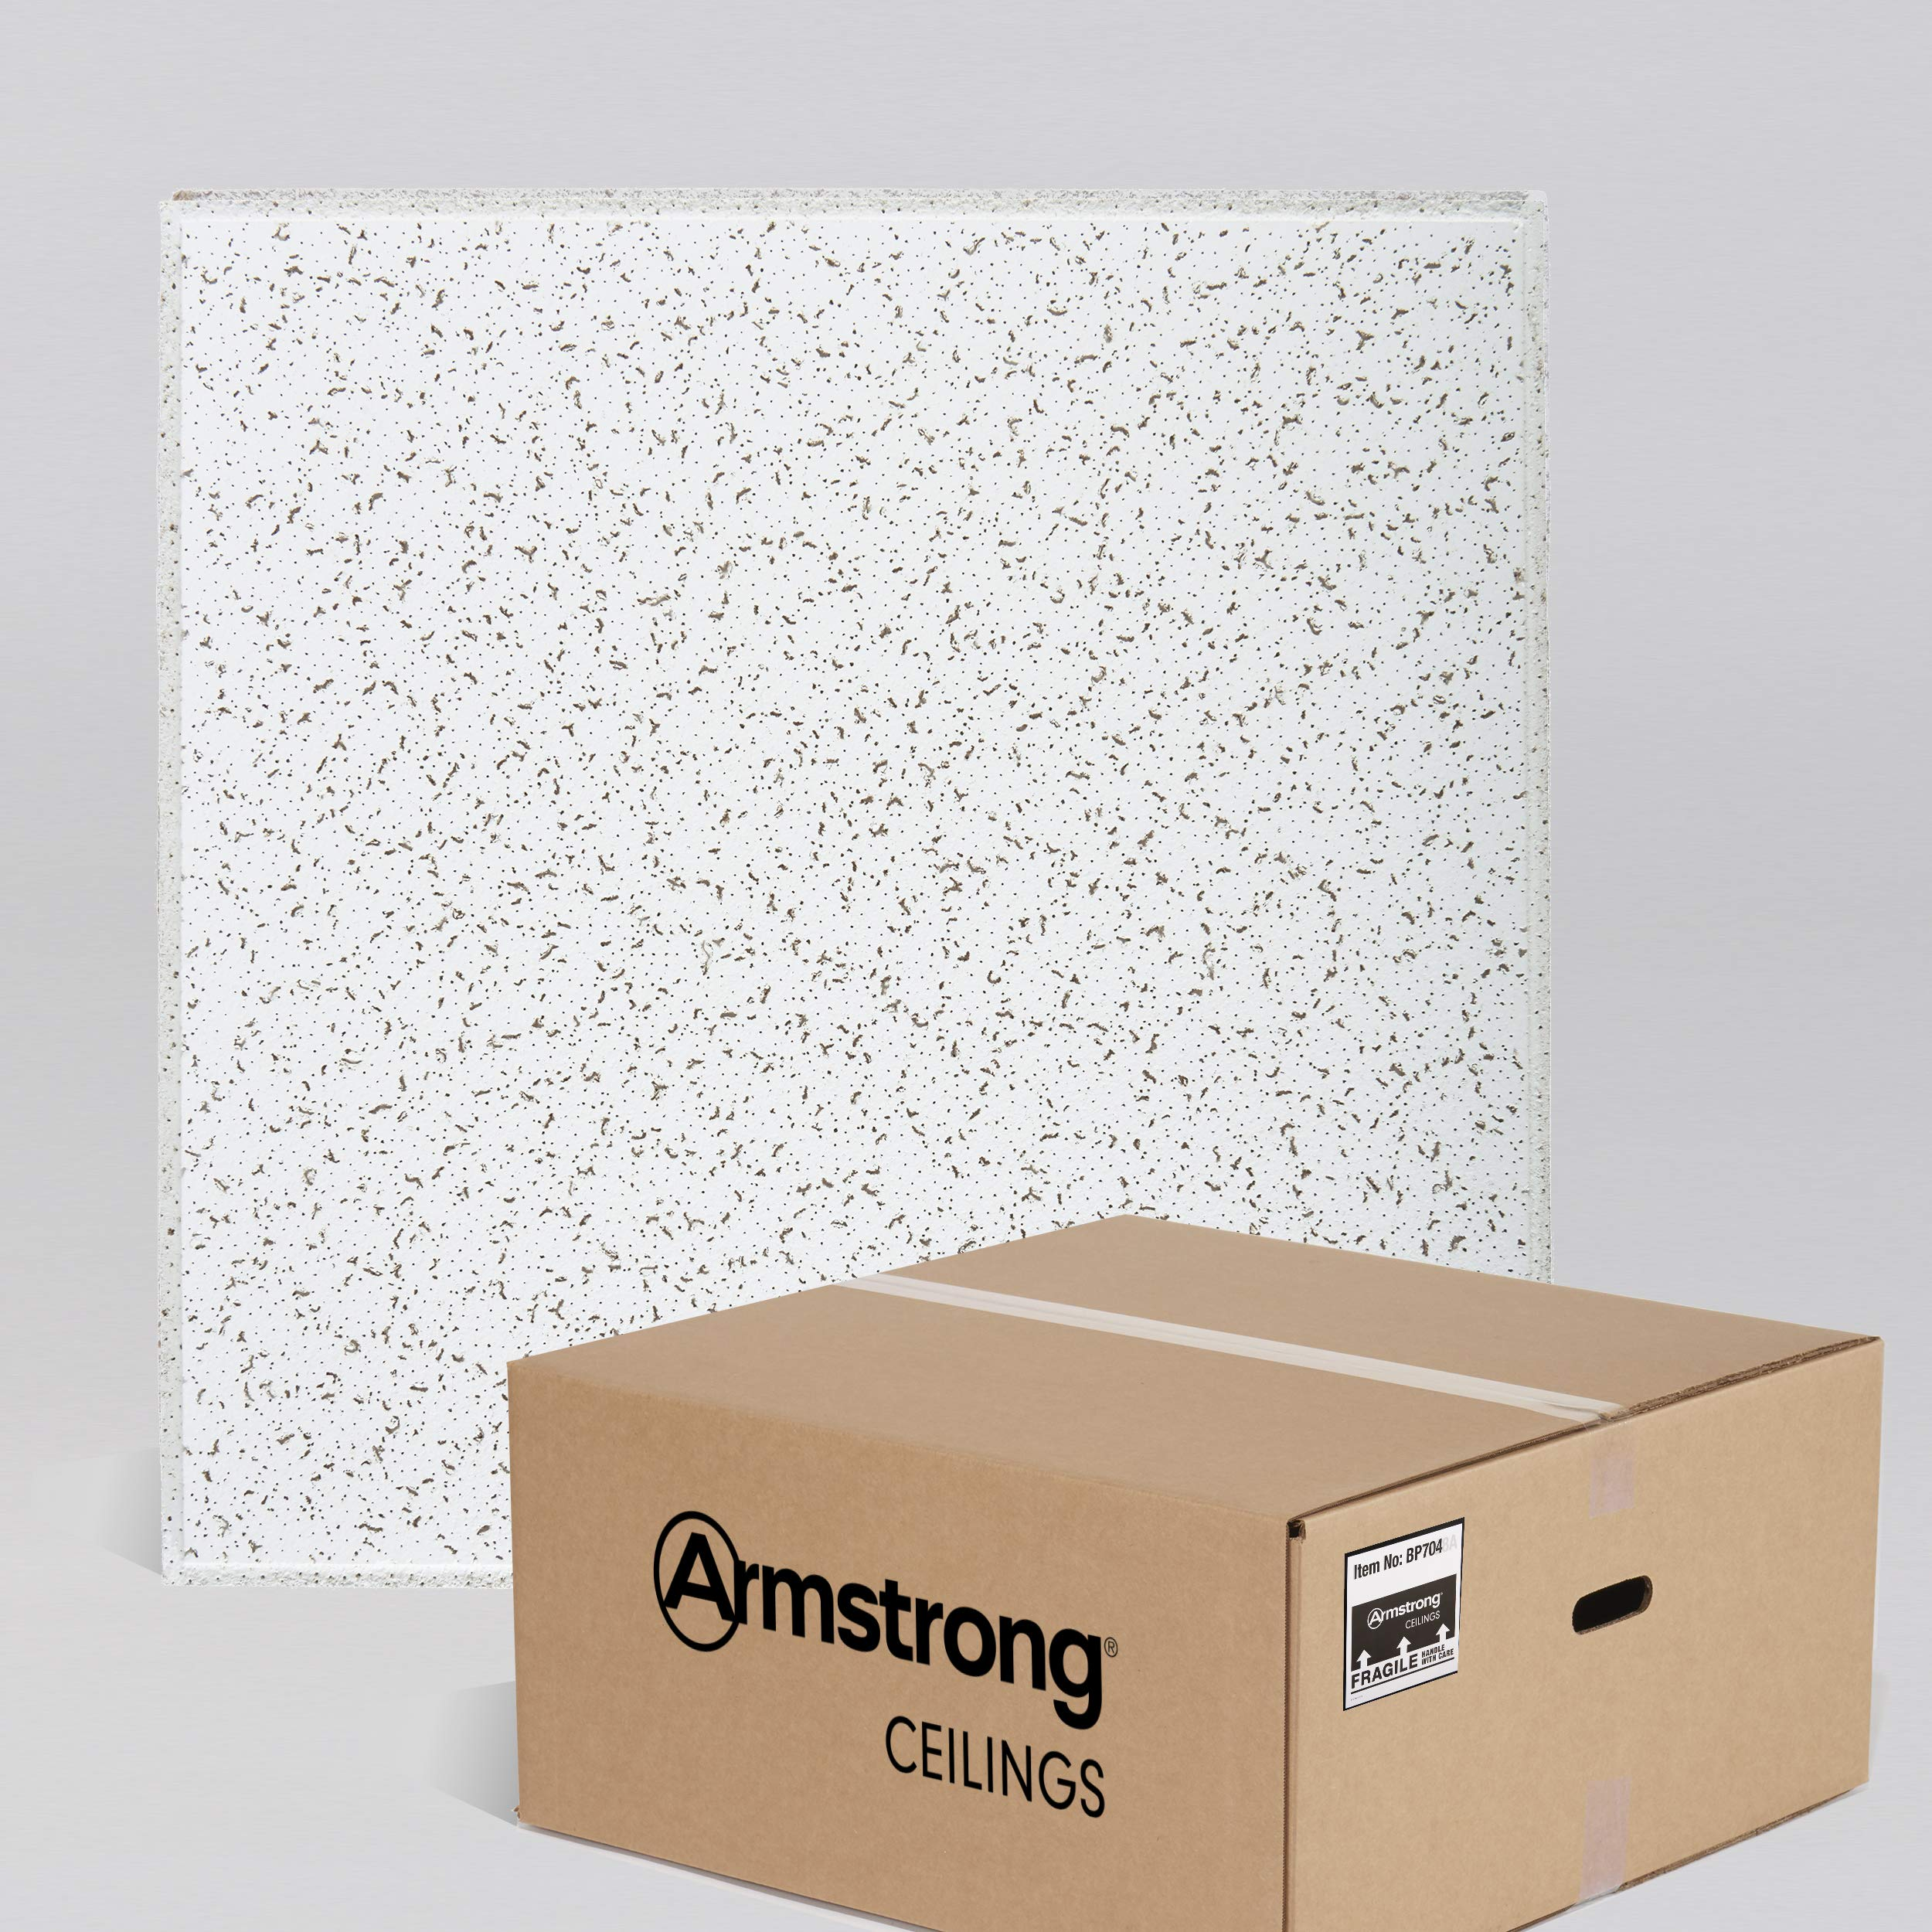 Armstrong Ceiling Tiles; 2x2 Ceiling Tiles - Acoustic Ceilings for Suspended Ceiling Grid; Drop Ceiling Tiles Direct from the Manufacturer; CORTEGA Item 704 - 16 pc White Tegular by Armstrong (Image #1)